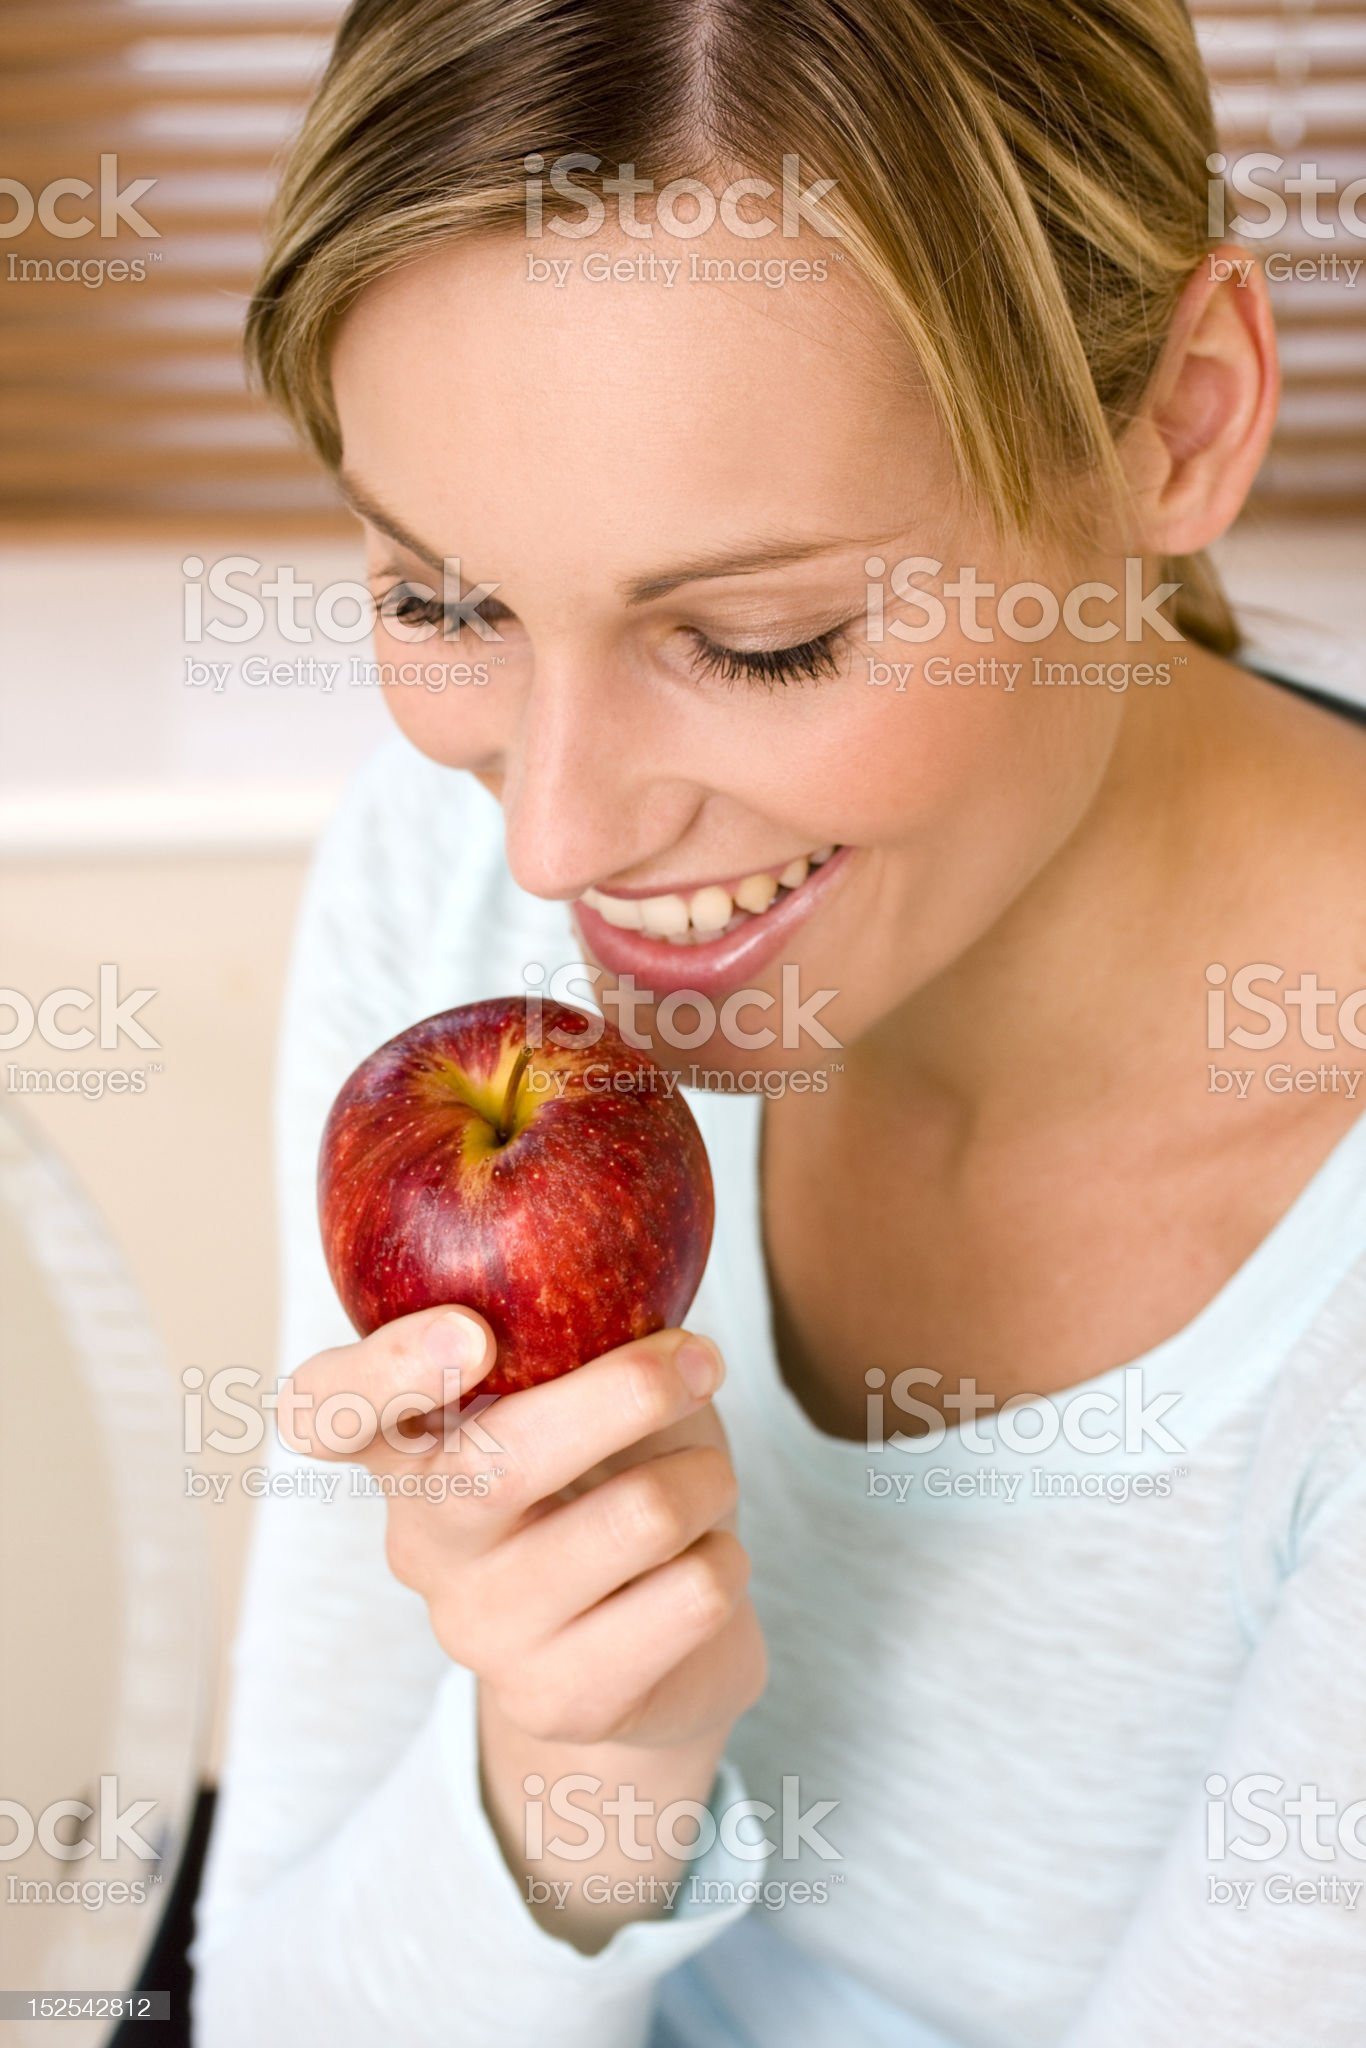 Young Healthy Woman Holding an Apple royalty-free stock photo